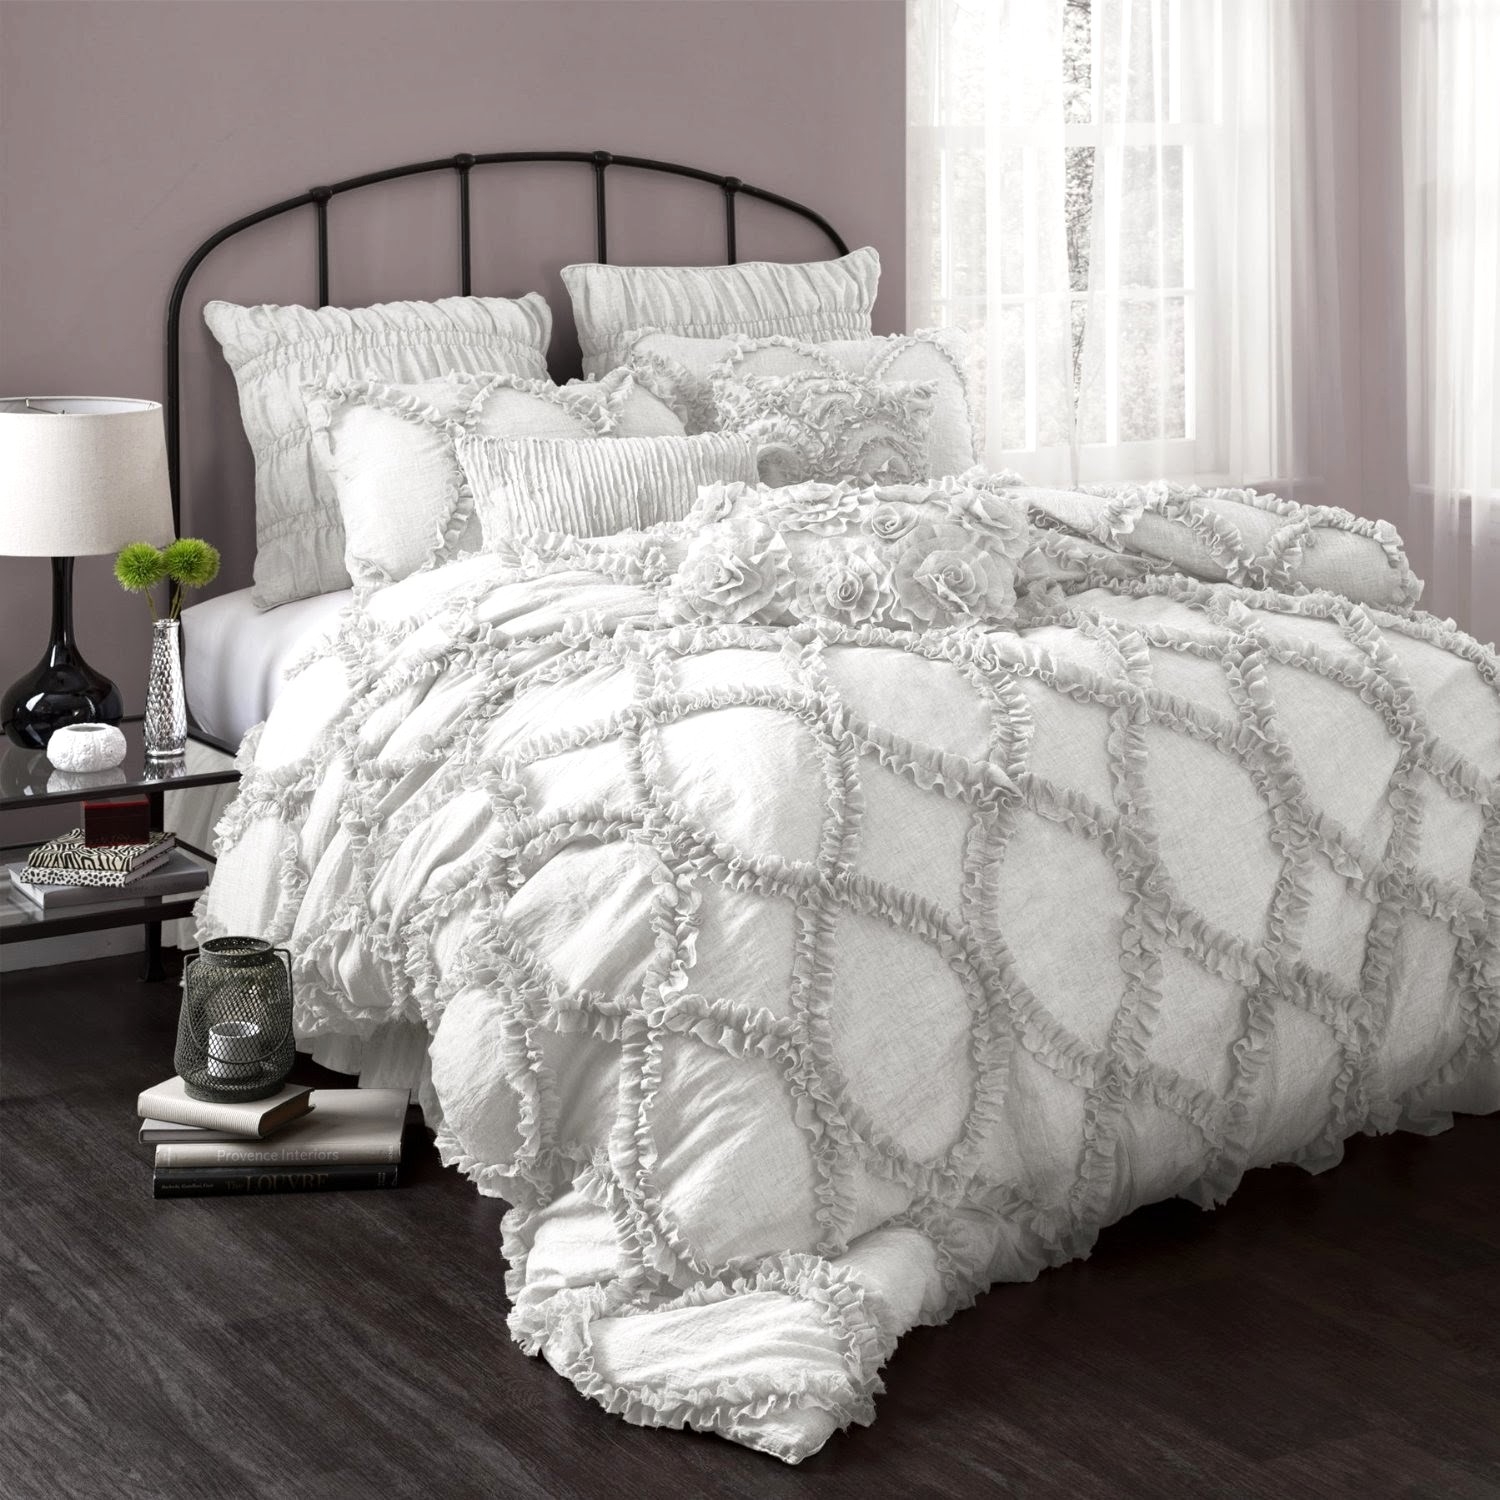 Image of: Cozy Chic Bedding Sets